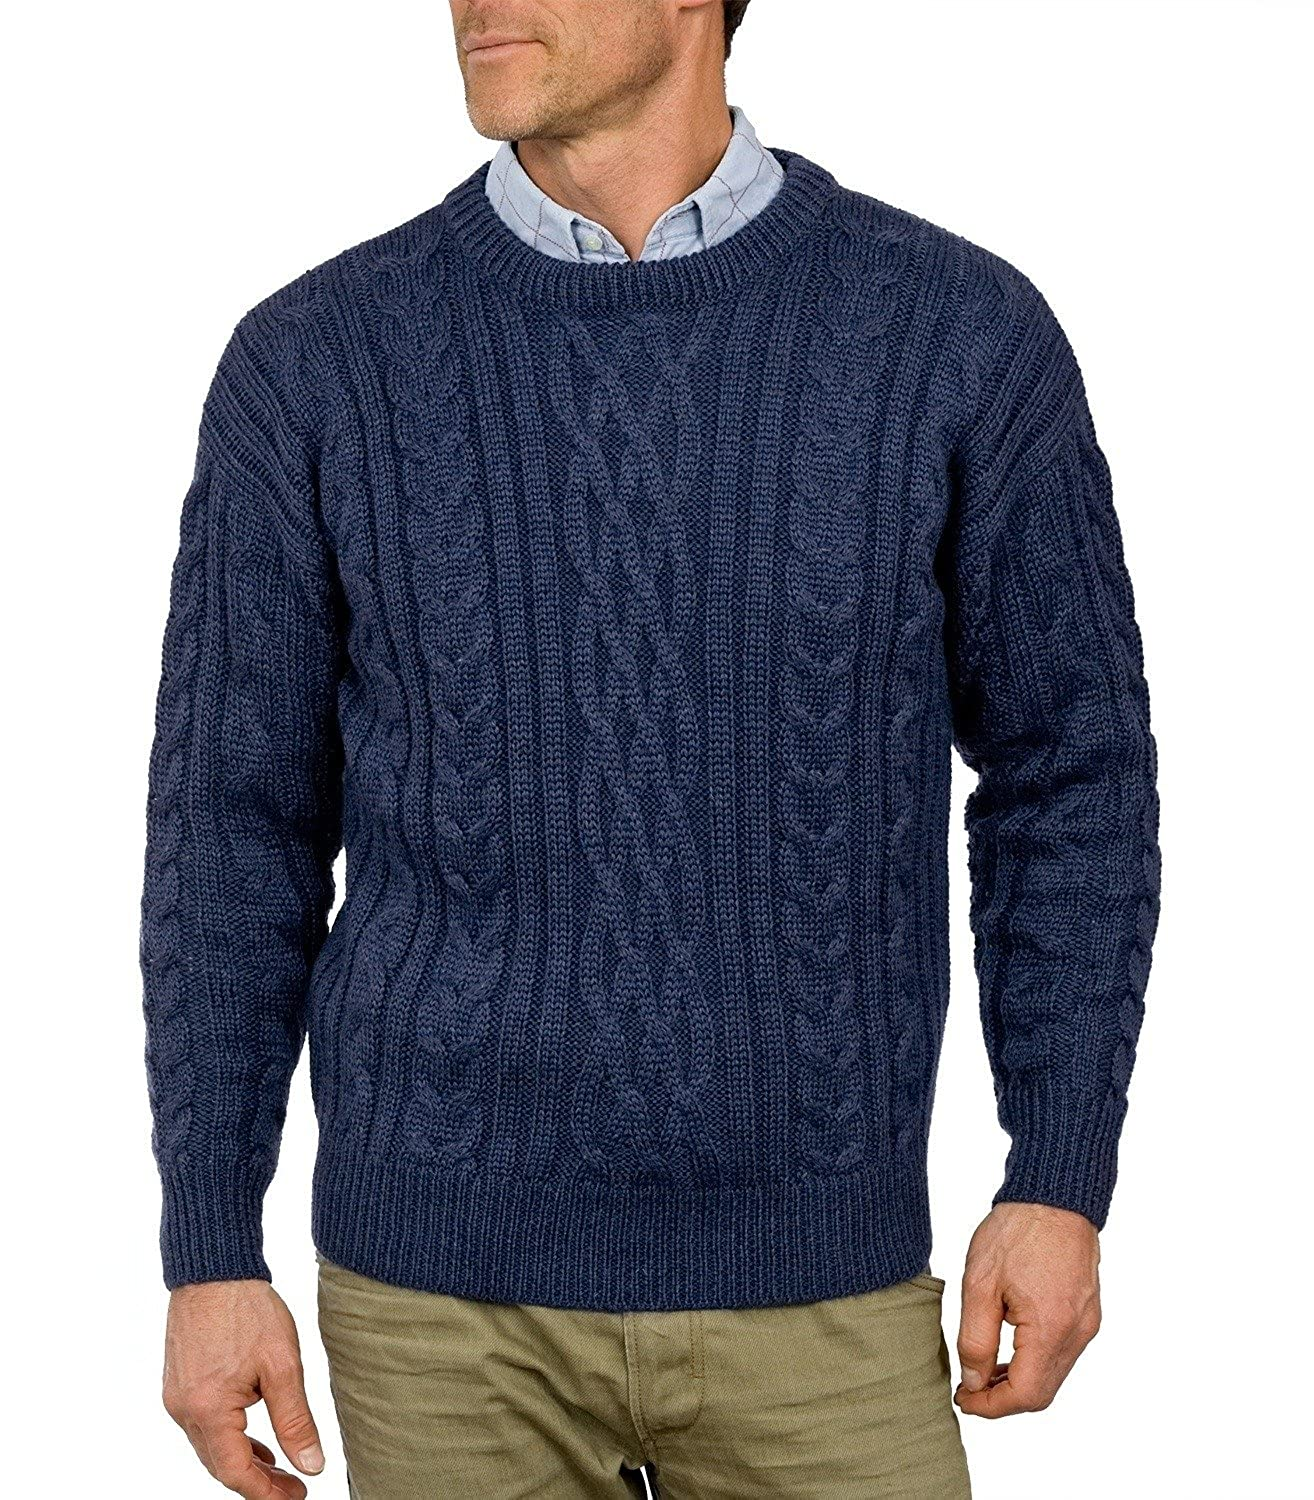 Men's Vintage Style Sweaters – 1920s to 1960s Wool Overs Mens Pure Wool Aran Sweater  AT vintagedancer.com